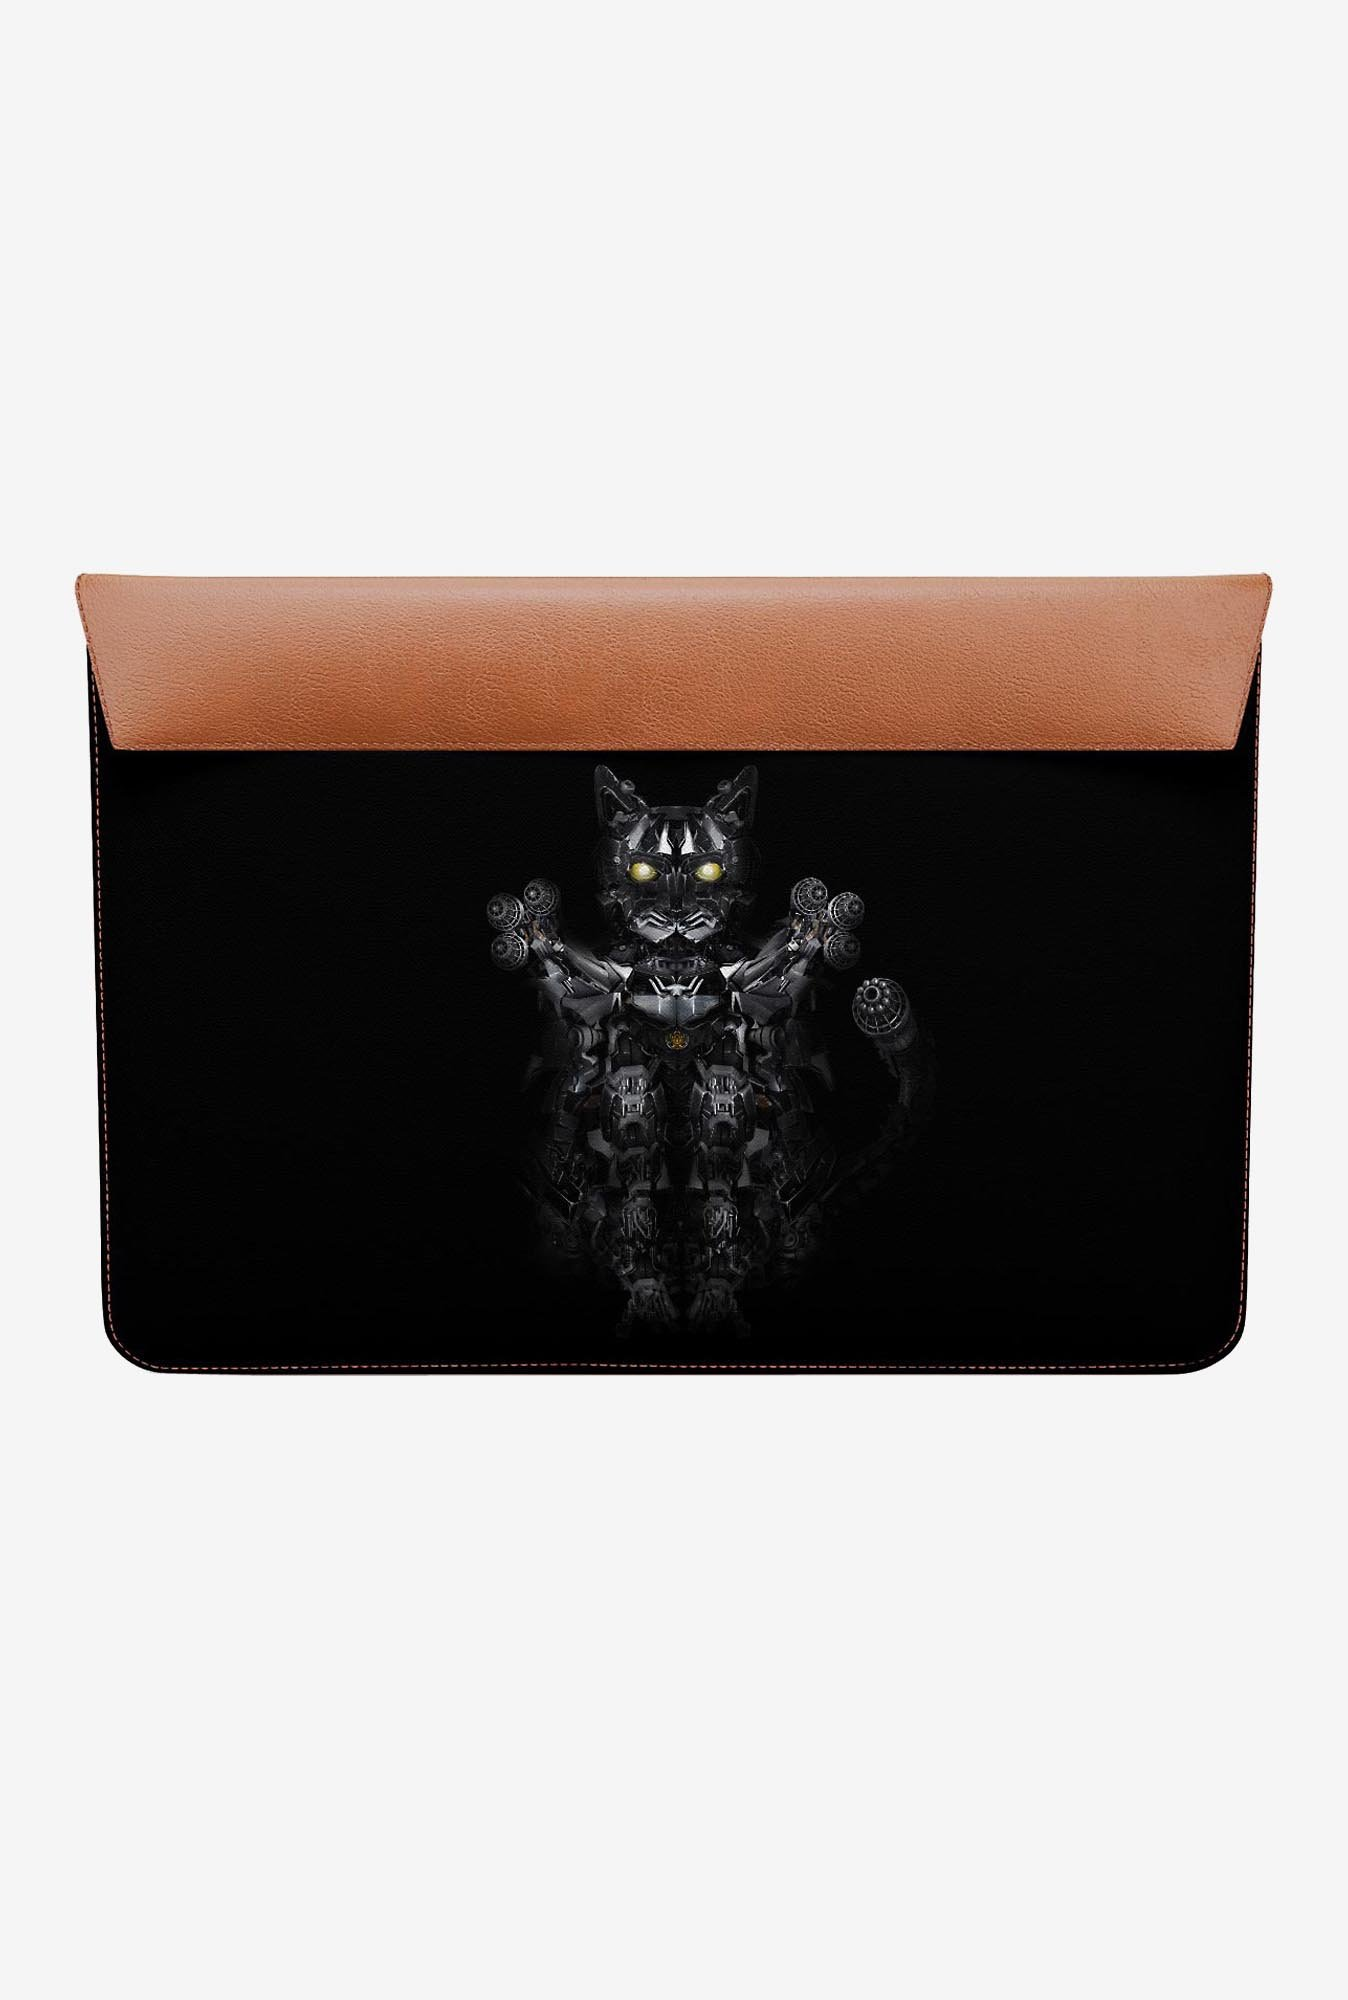 DailyObjects RoboWarrior Cat MacBook 12 Envelope Sleeve